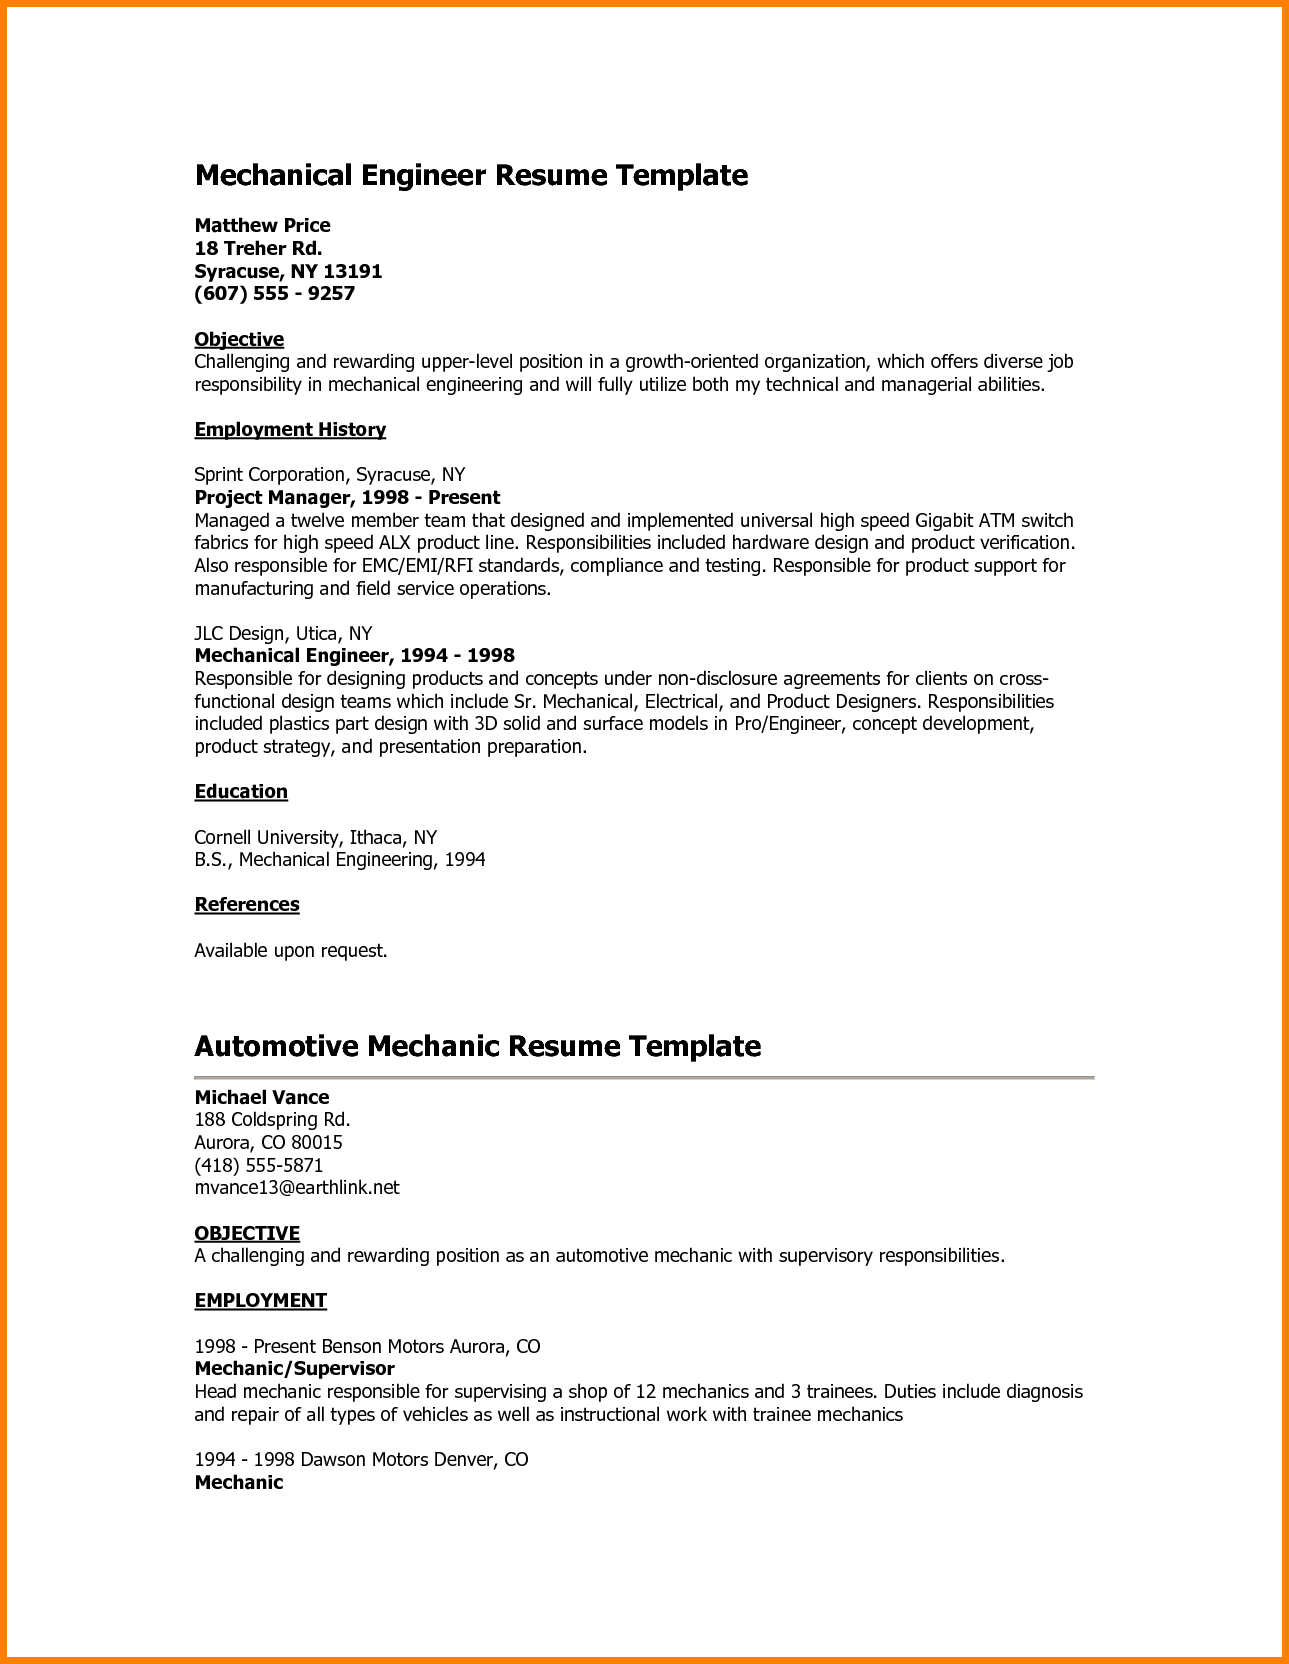 Mechanical Engineer Resume Objective Examples Sidemcicek Com Creativeresumeideas Mechanical Engineer Resume Bank Teller Resume Resume